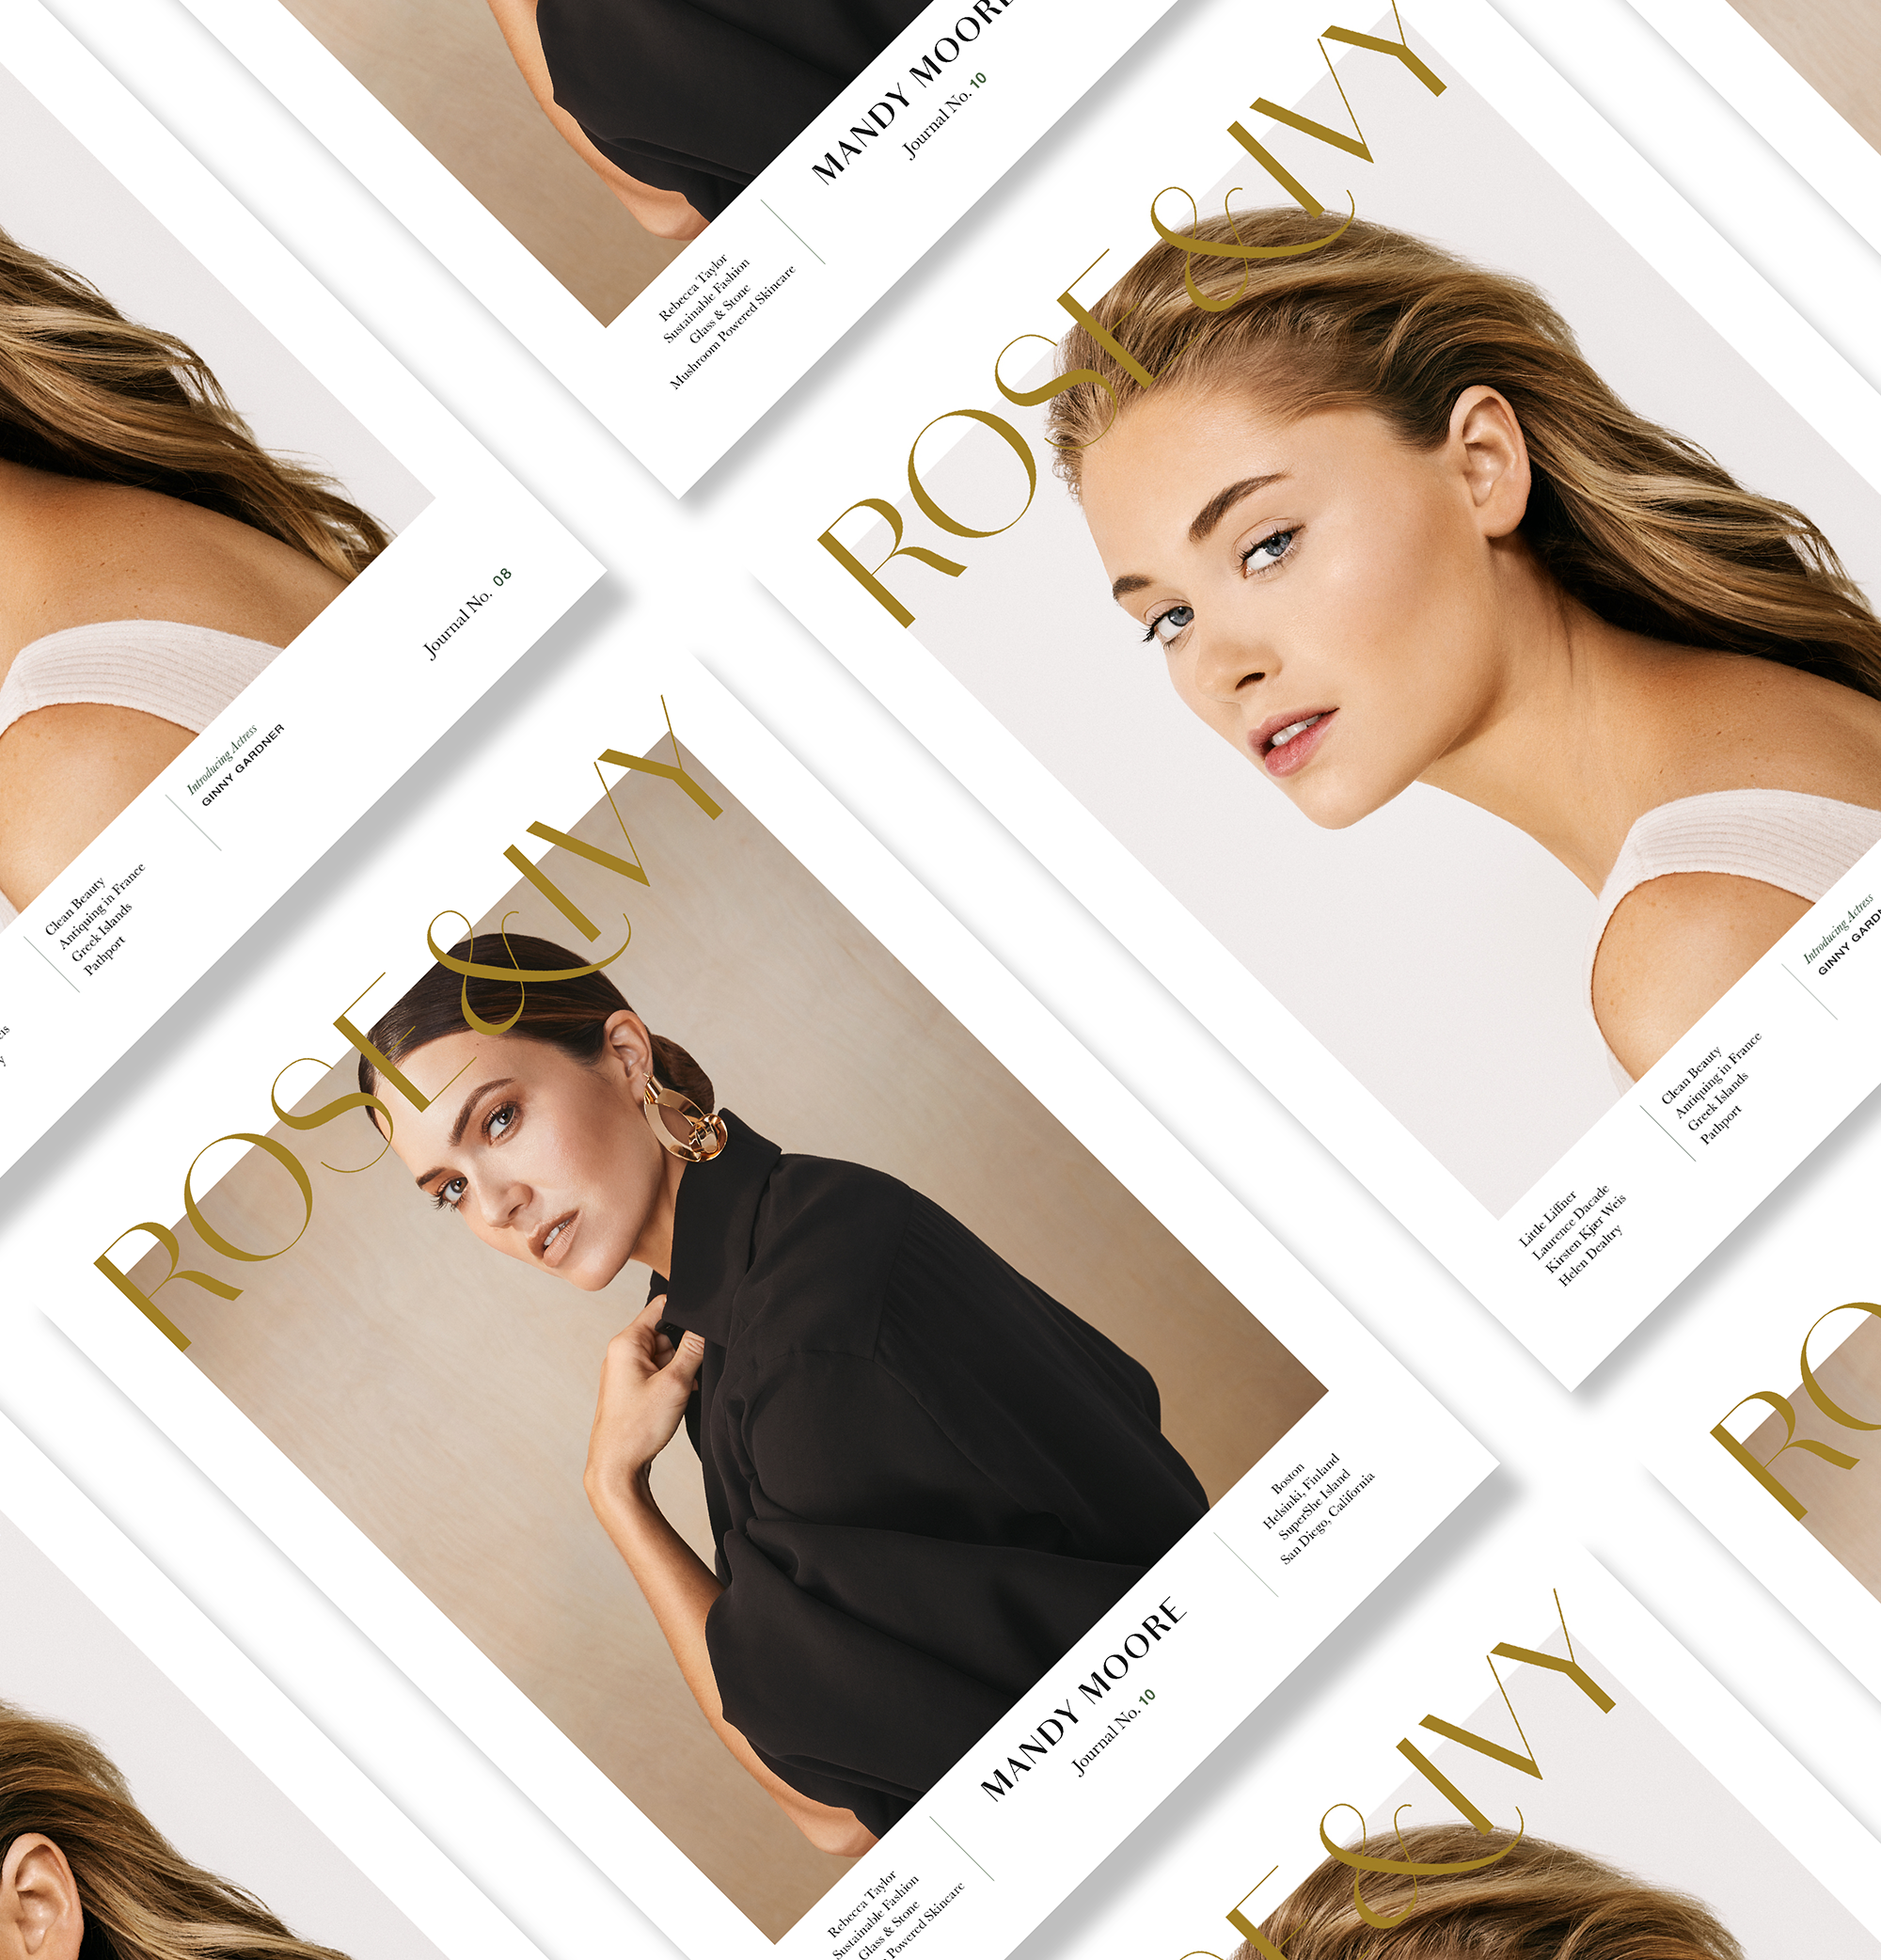 ROSE & IVY Journal Subscribe & Receive a Complimentary Issue